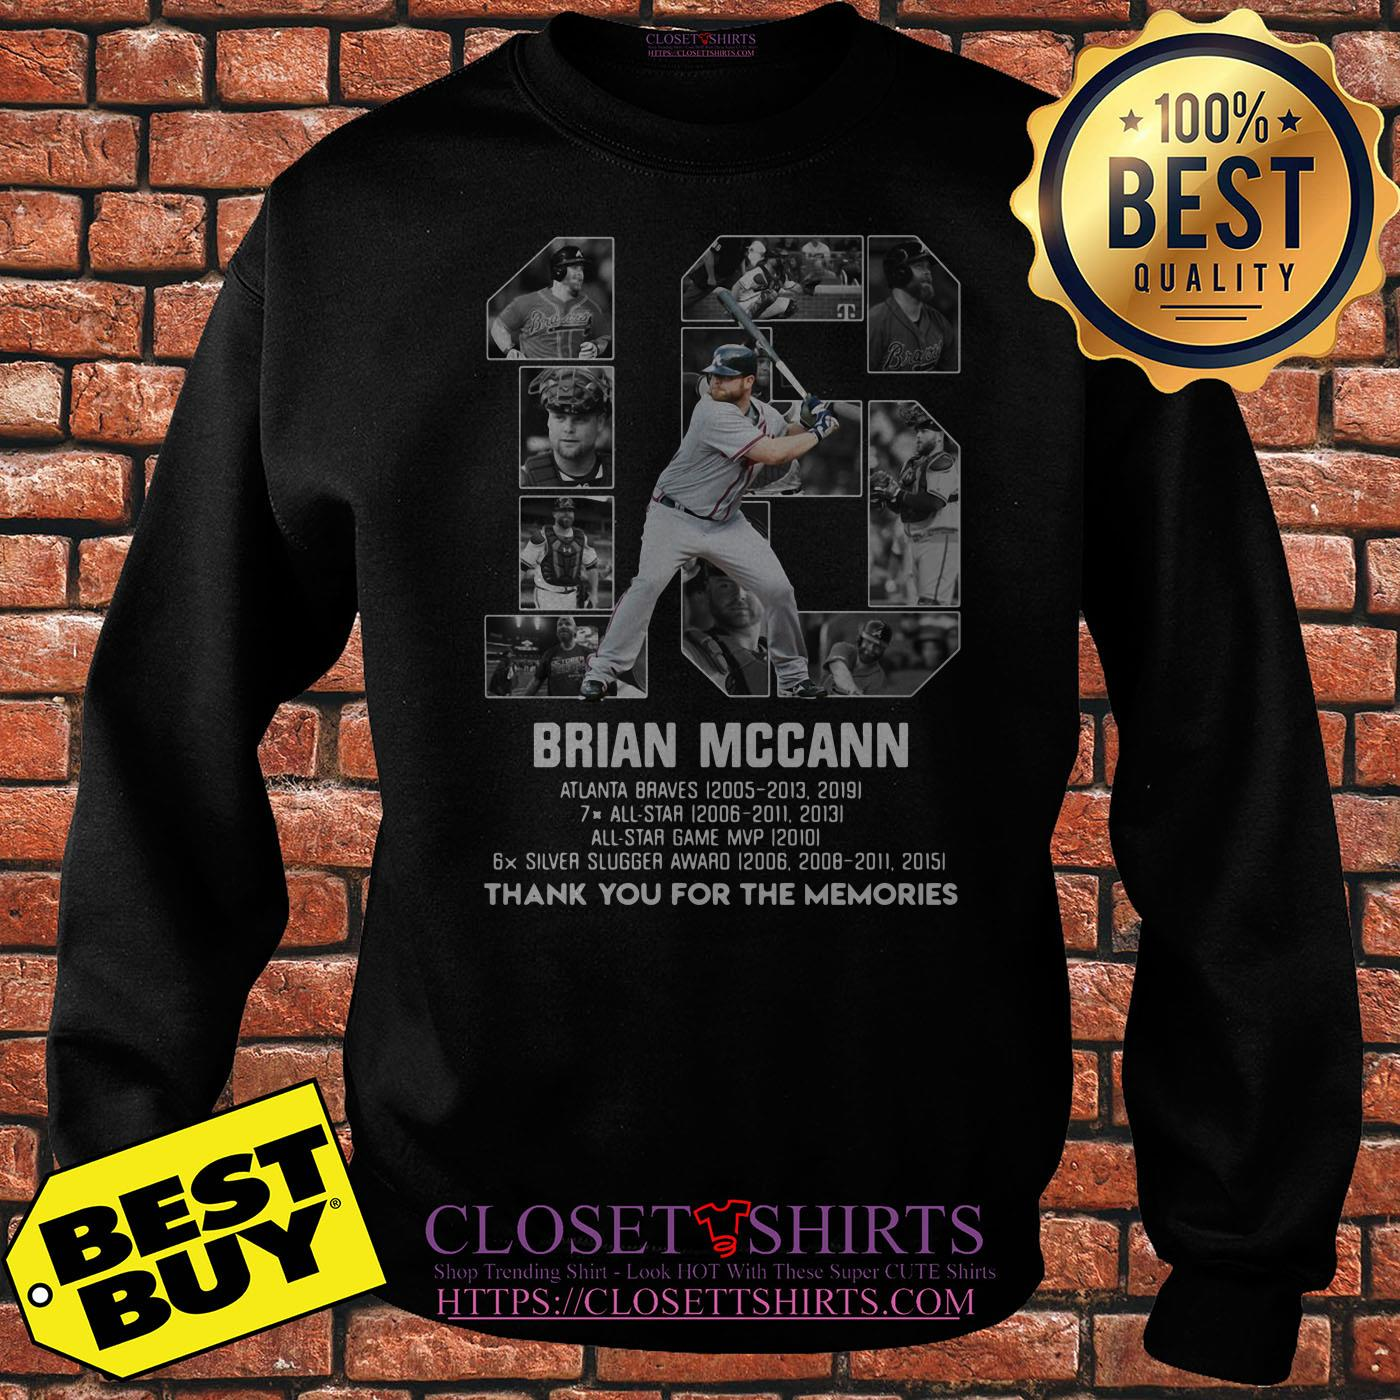 Brian Mccann Signature Thank You For The Memories sweatshirt